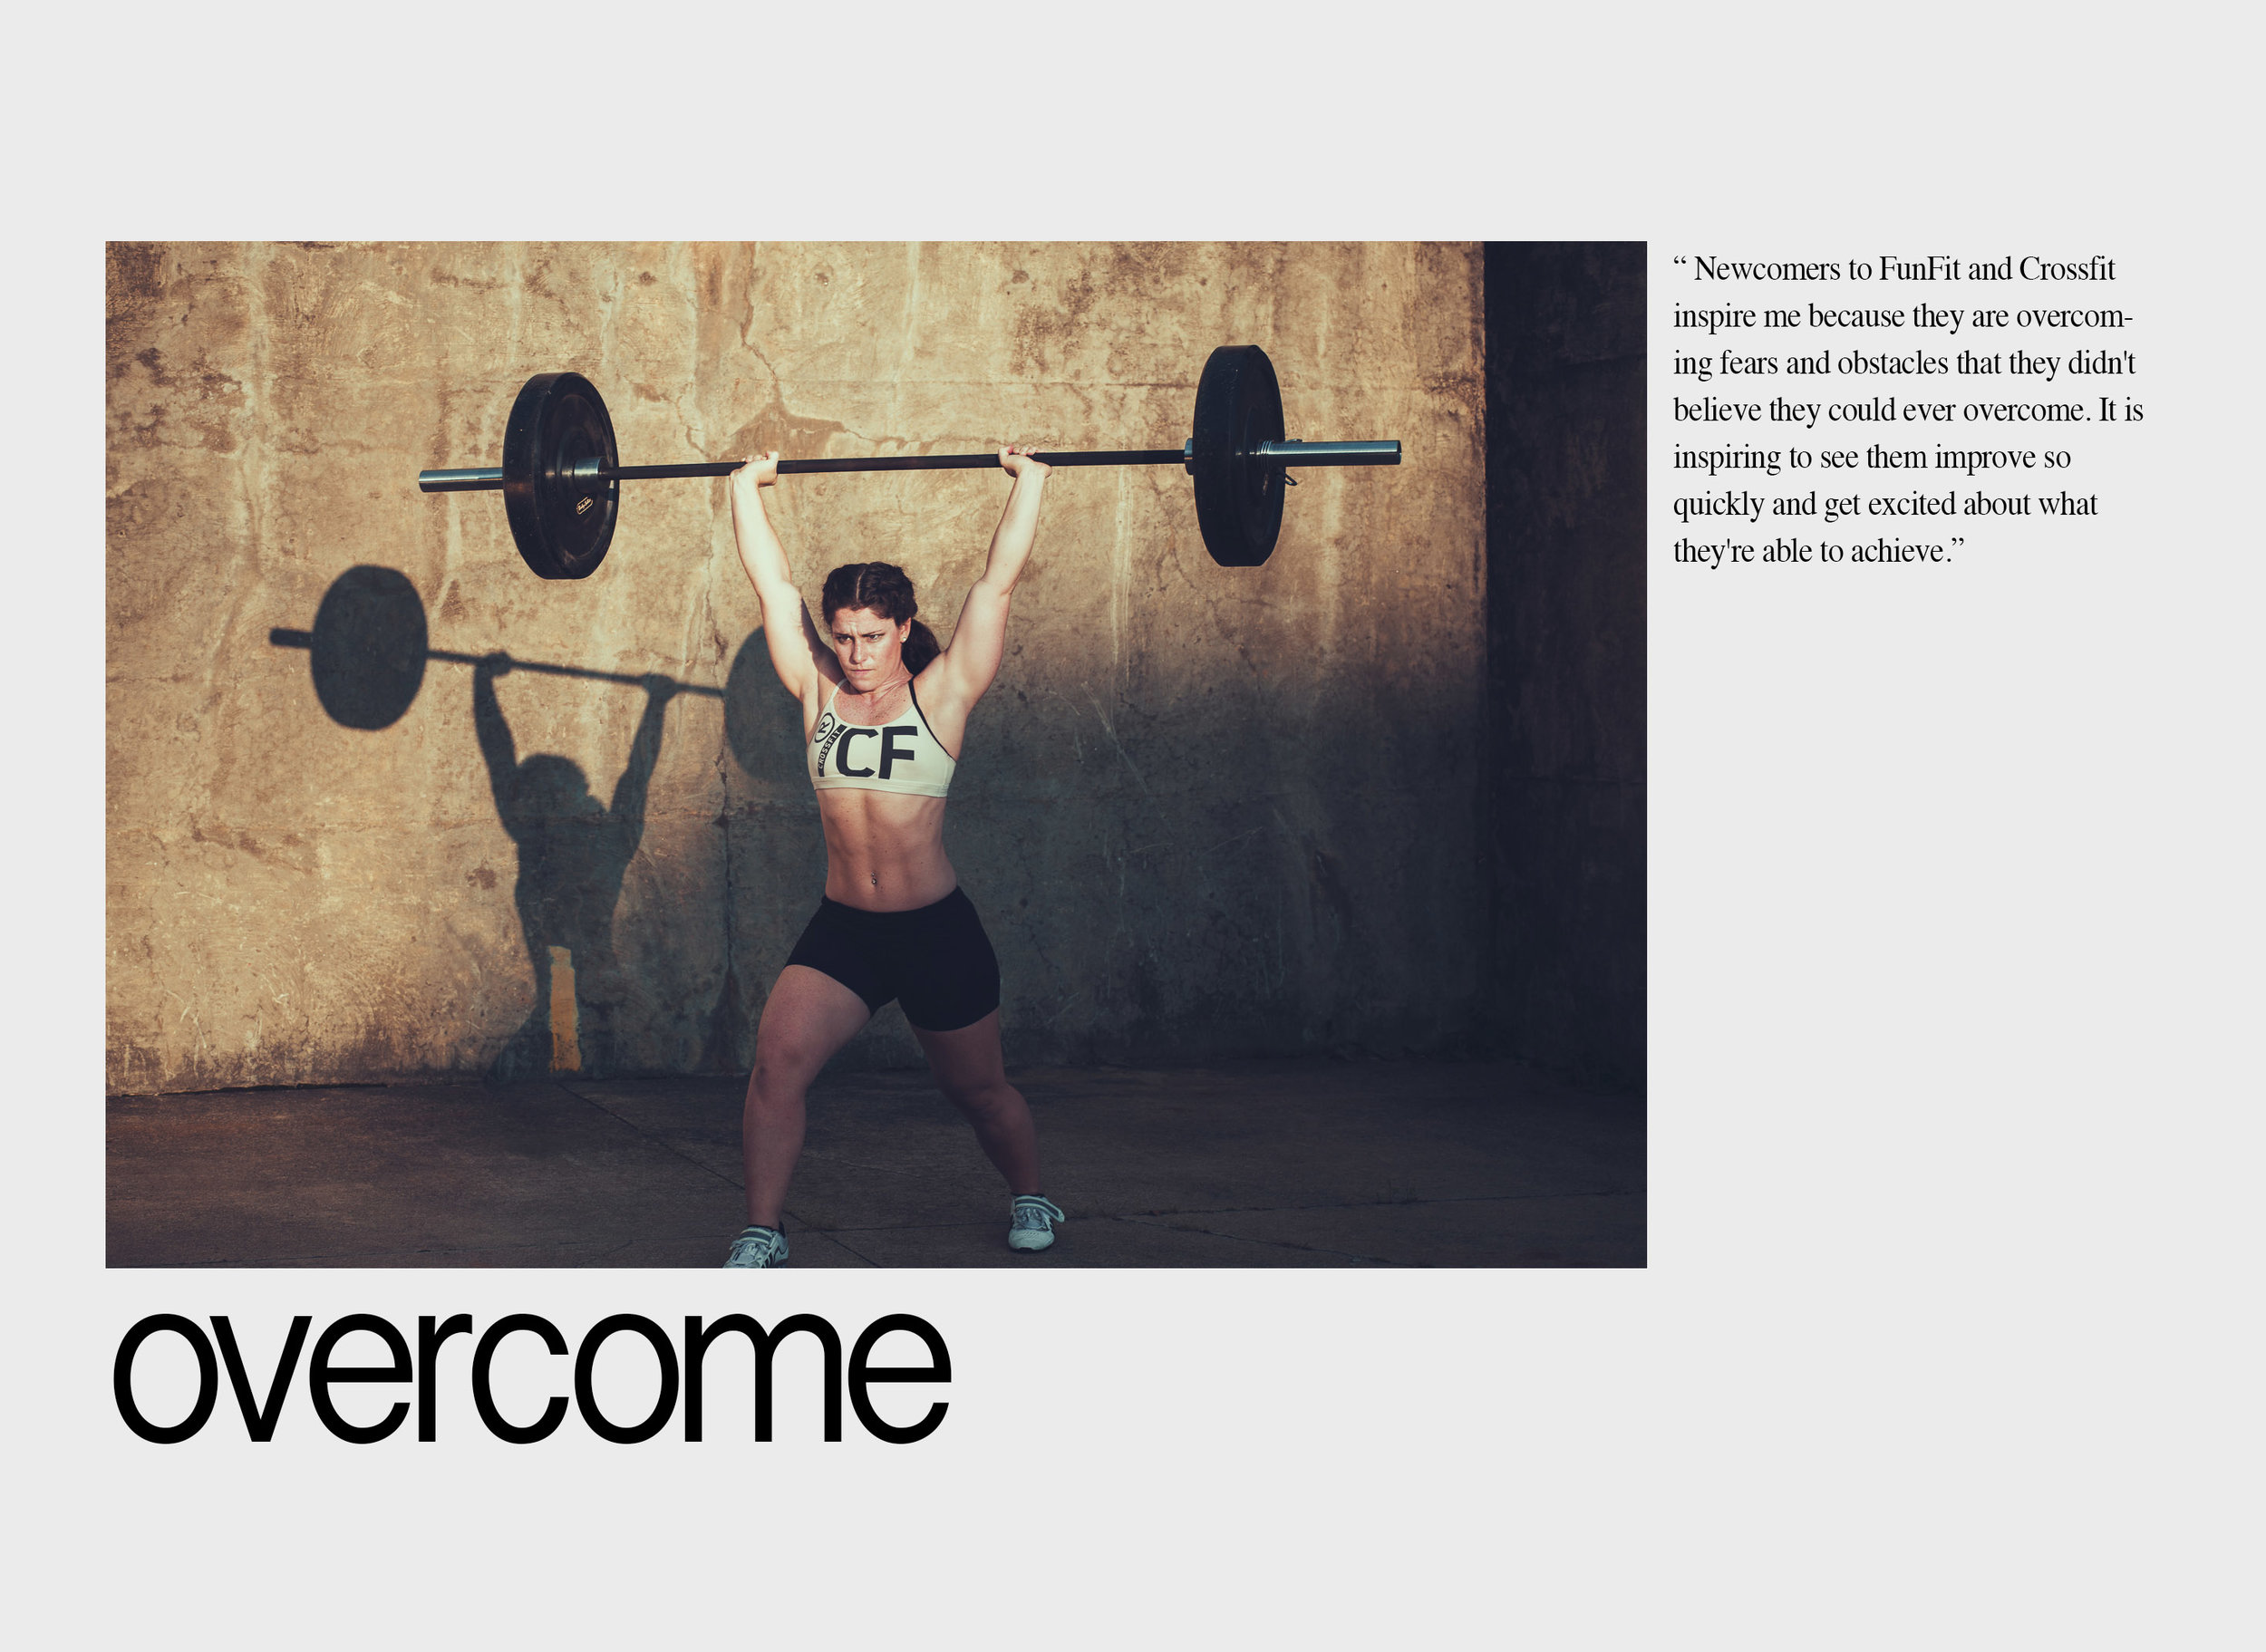 faith-through-fotos_crossfit-karli-stroud_spread-4.jpg